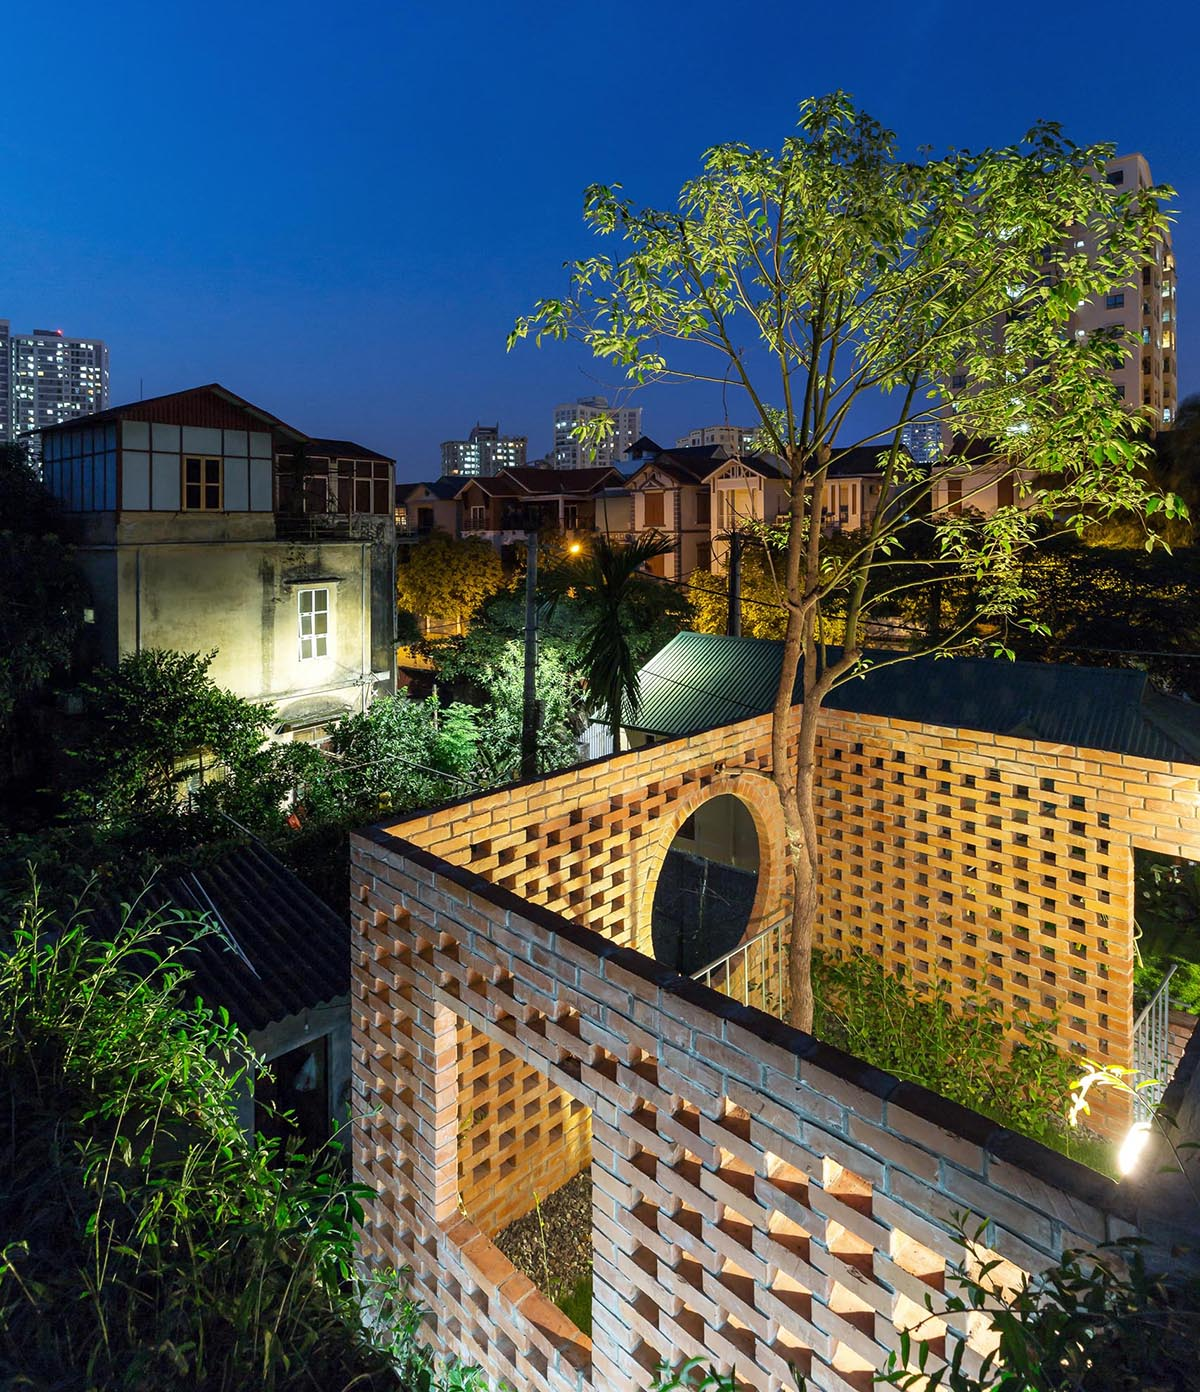 Outdoor lighting makes this rooftop terrace light up like a lantern.